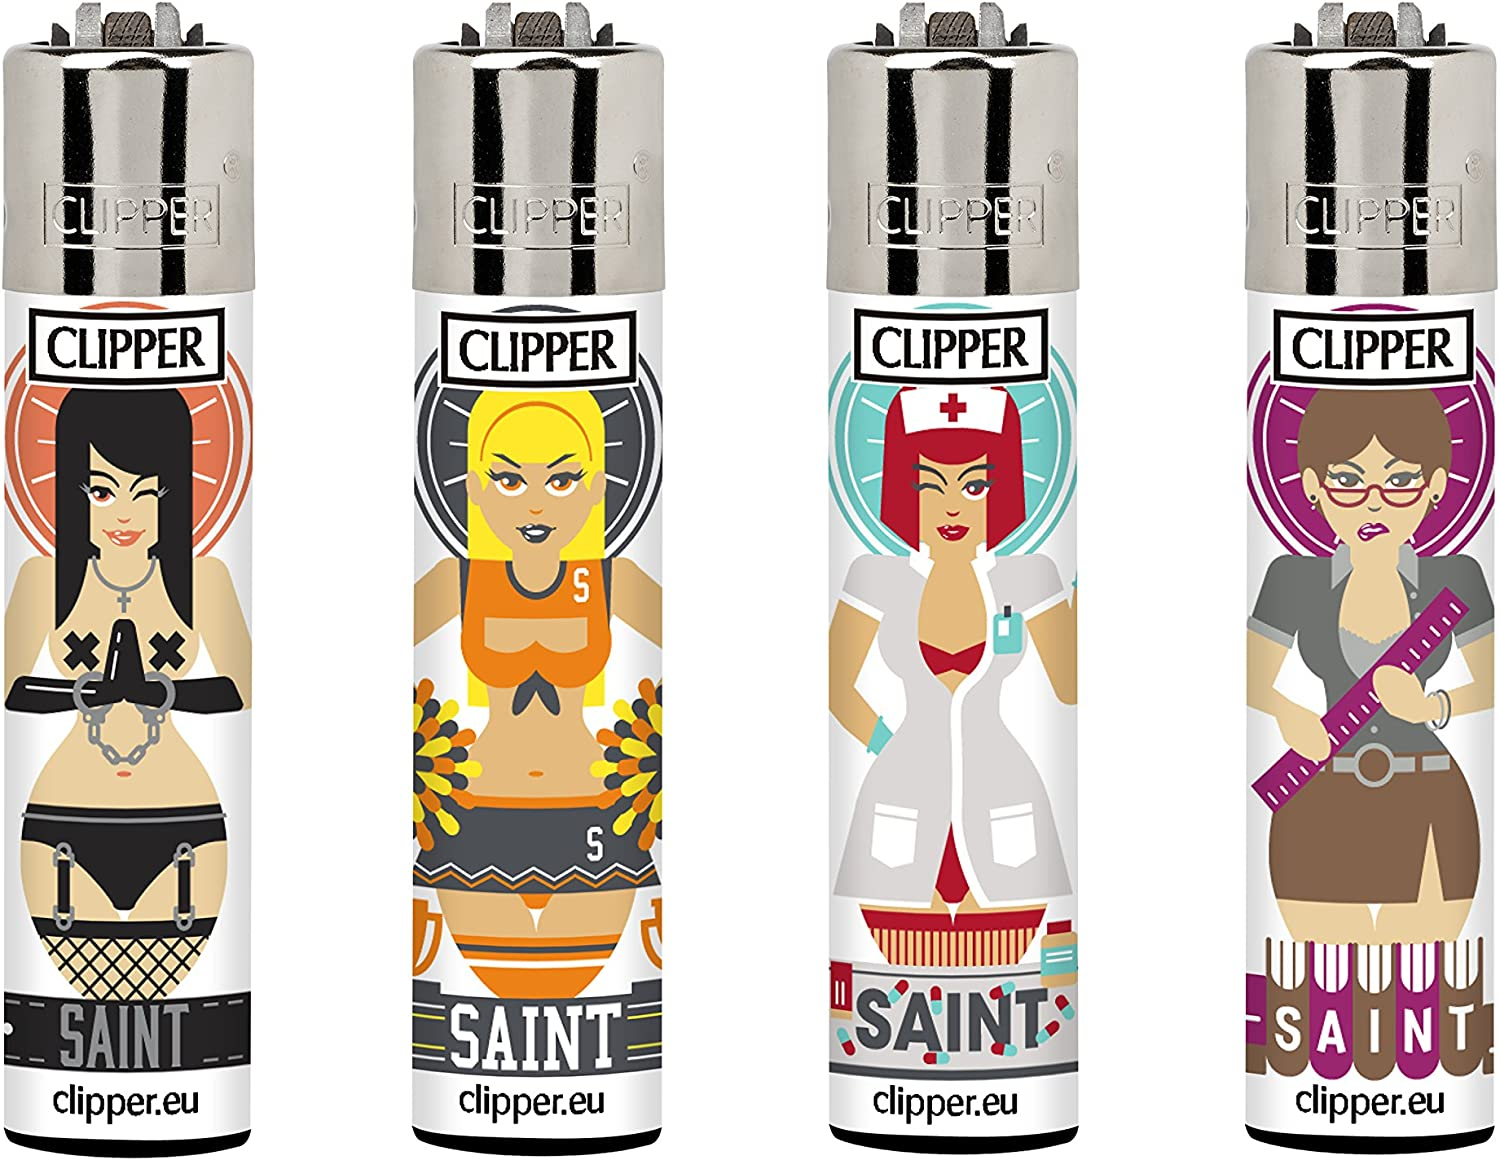 Clipper 64, Saints colección, pack de 4 encendedores: Amazon.es: Jardín